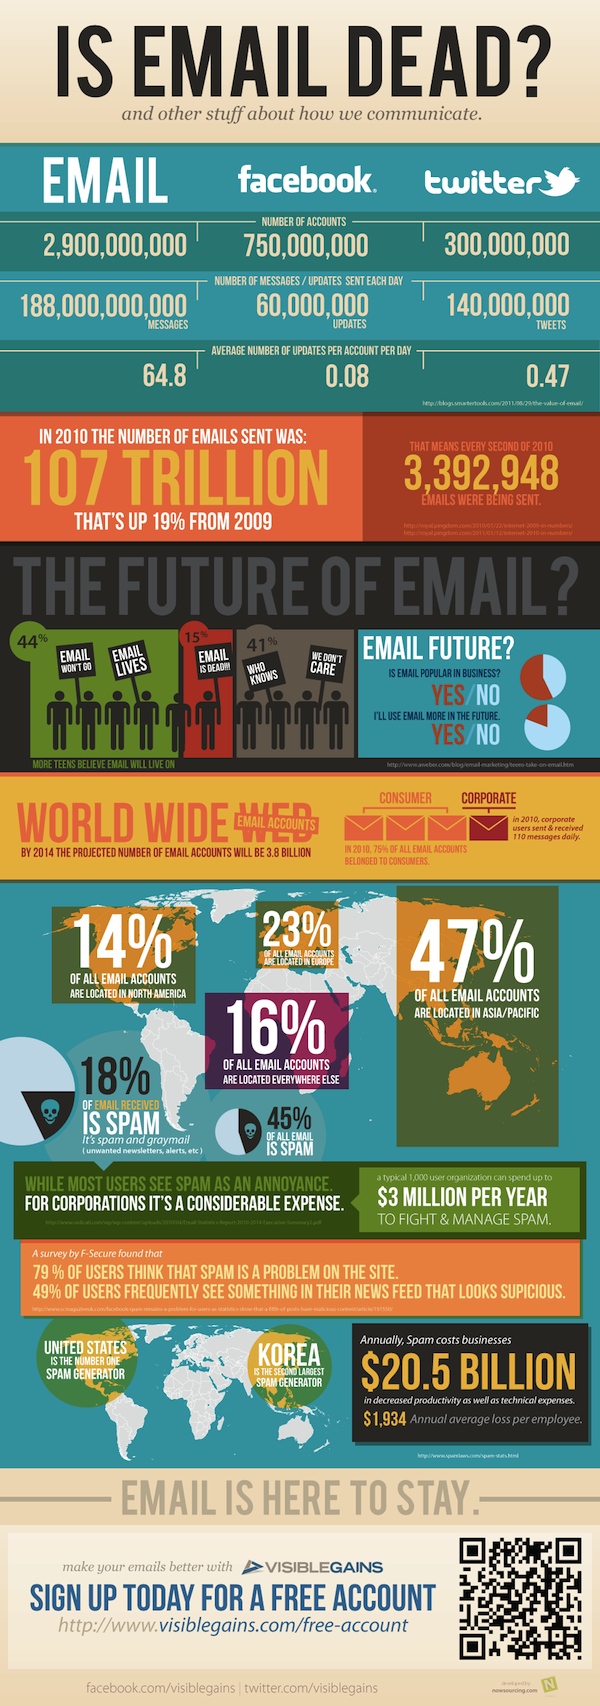 email spam infographic